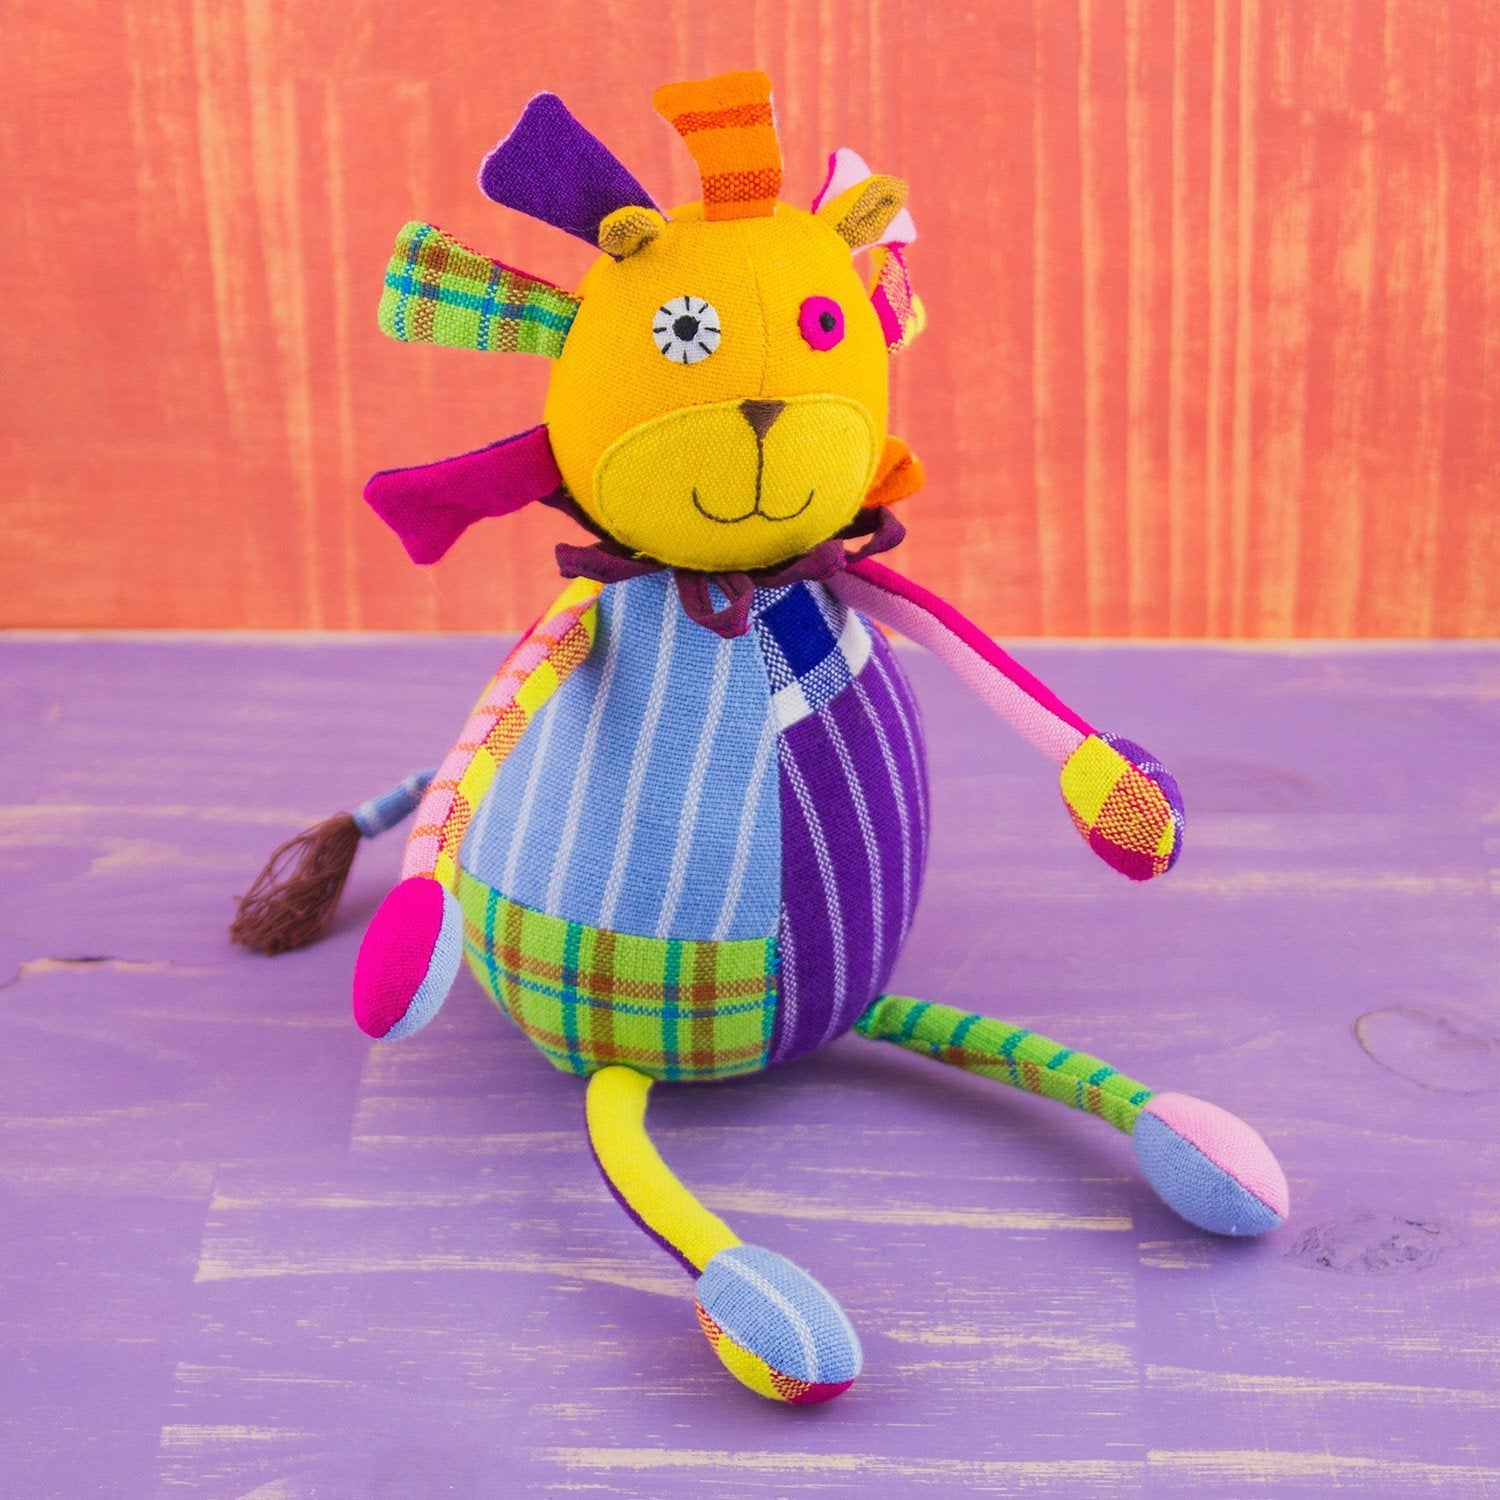 soft lion shaped doll, lion is constructed of quilt like patches, giving it many colors and patterns